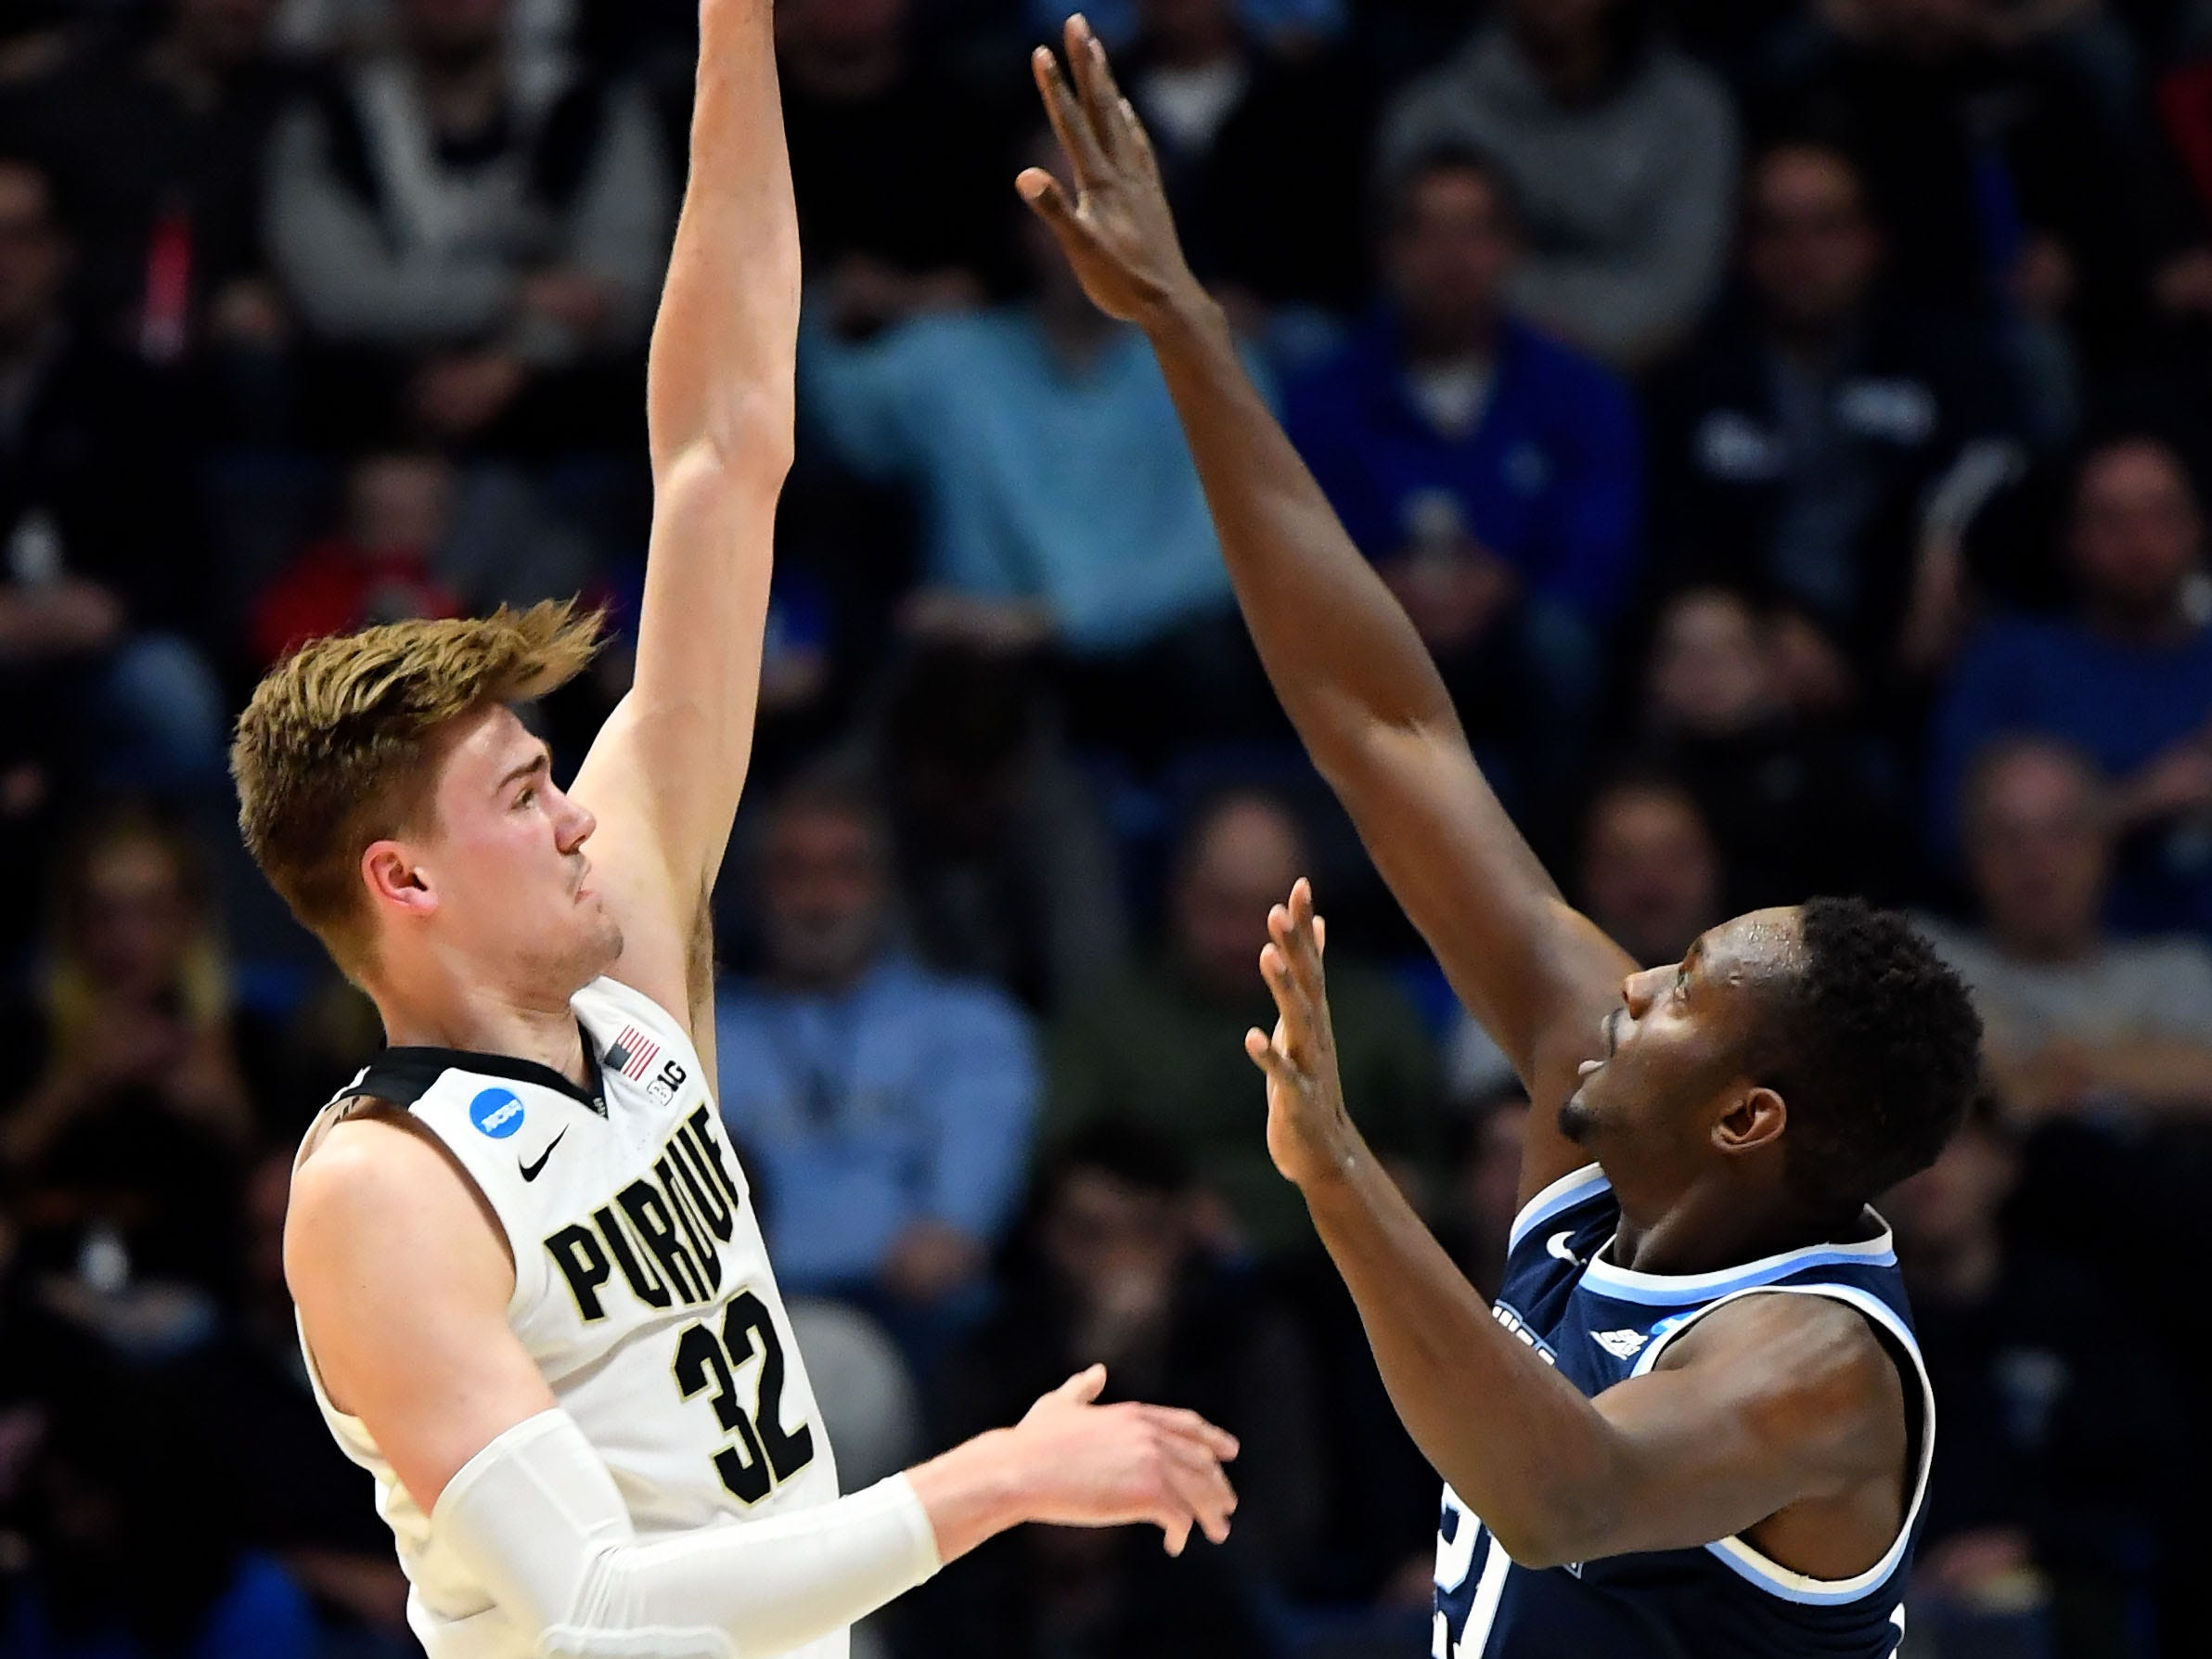 Mar 23, 2019; Hartford, CT, USA; Purdue Boilermakers center Matt Haarms (32) attempts a shot over Villanova Wildcats forward Dhamir Cosby-Roundtree (21) during the first half of game in the second round of the 2019 NCAA Tournament at XL Center. Mandatory Credit: Robert Deutsch-USA TODAY Sports